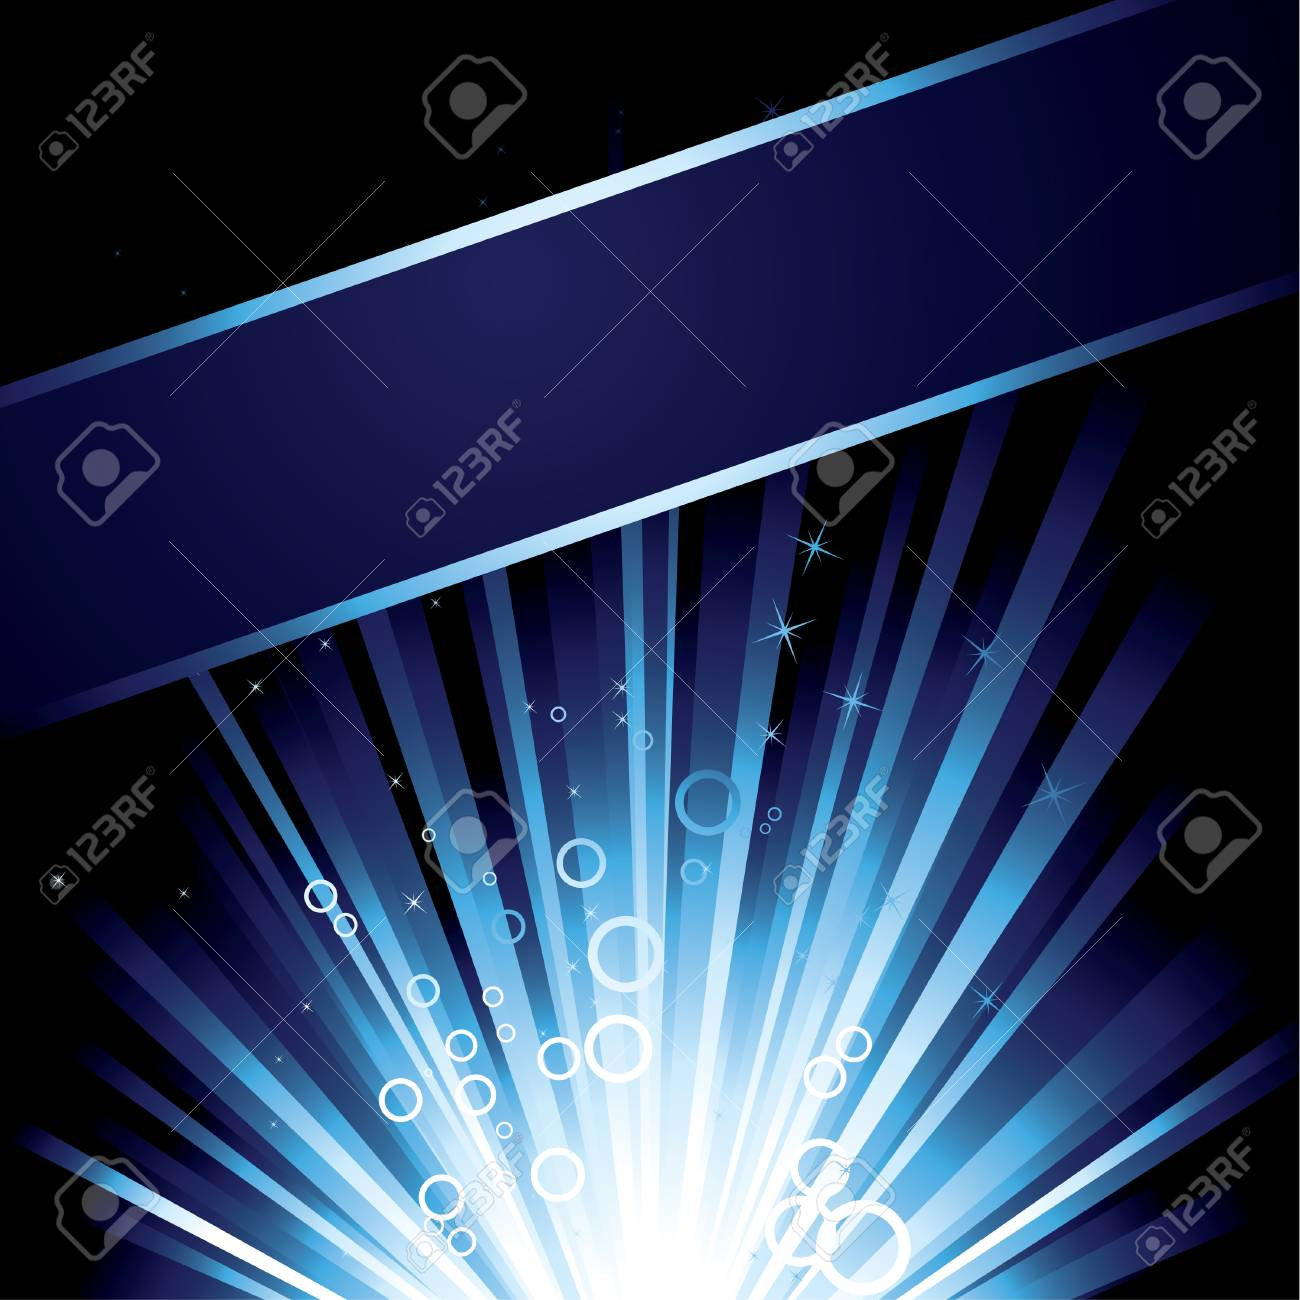 Detailed illustration with a blue burst with stars for text Stock Vector - 4704913